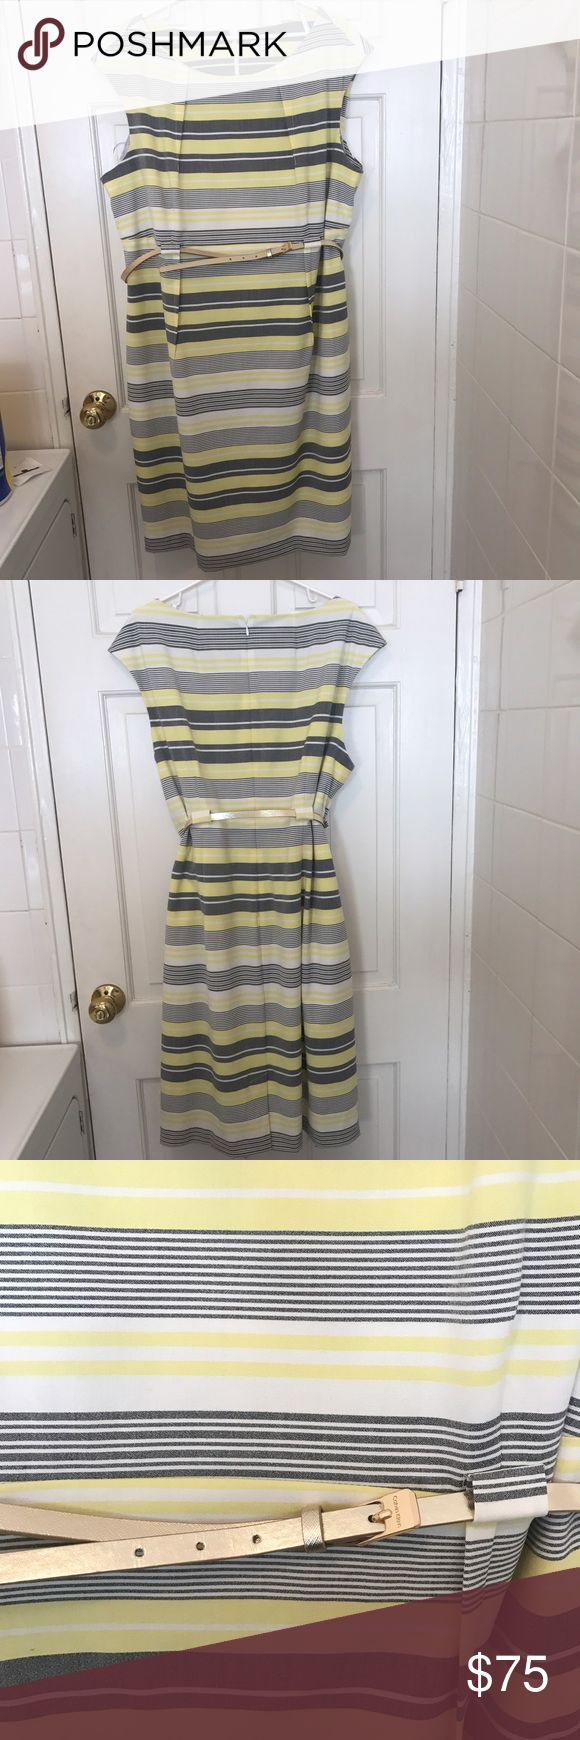 Calvin Klein Work Dress 18 W Calvin Klein yellow gray and white work dress. Worn twice. Adorable and flattering. Small black dot on front of Dress can be seen in last picture. Calvin Klein Dresses